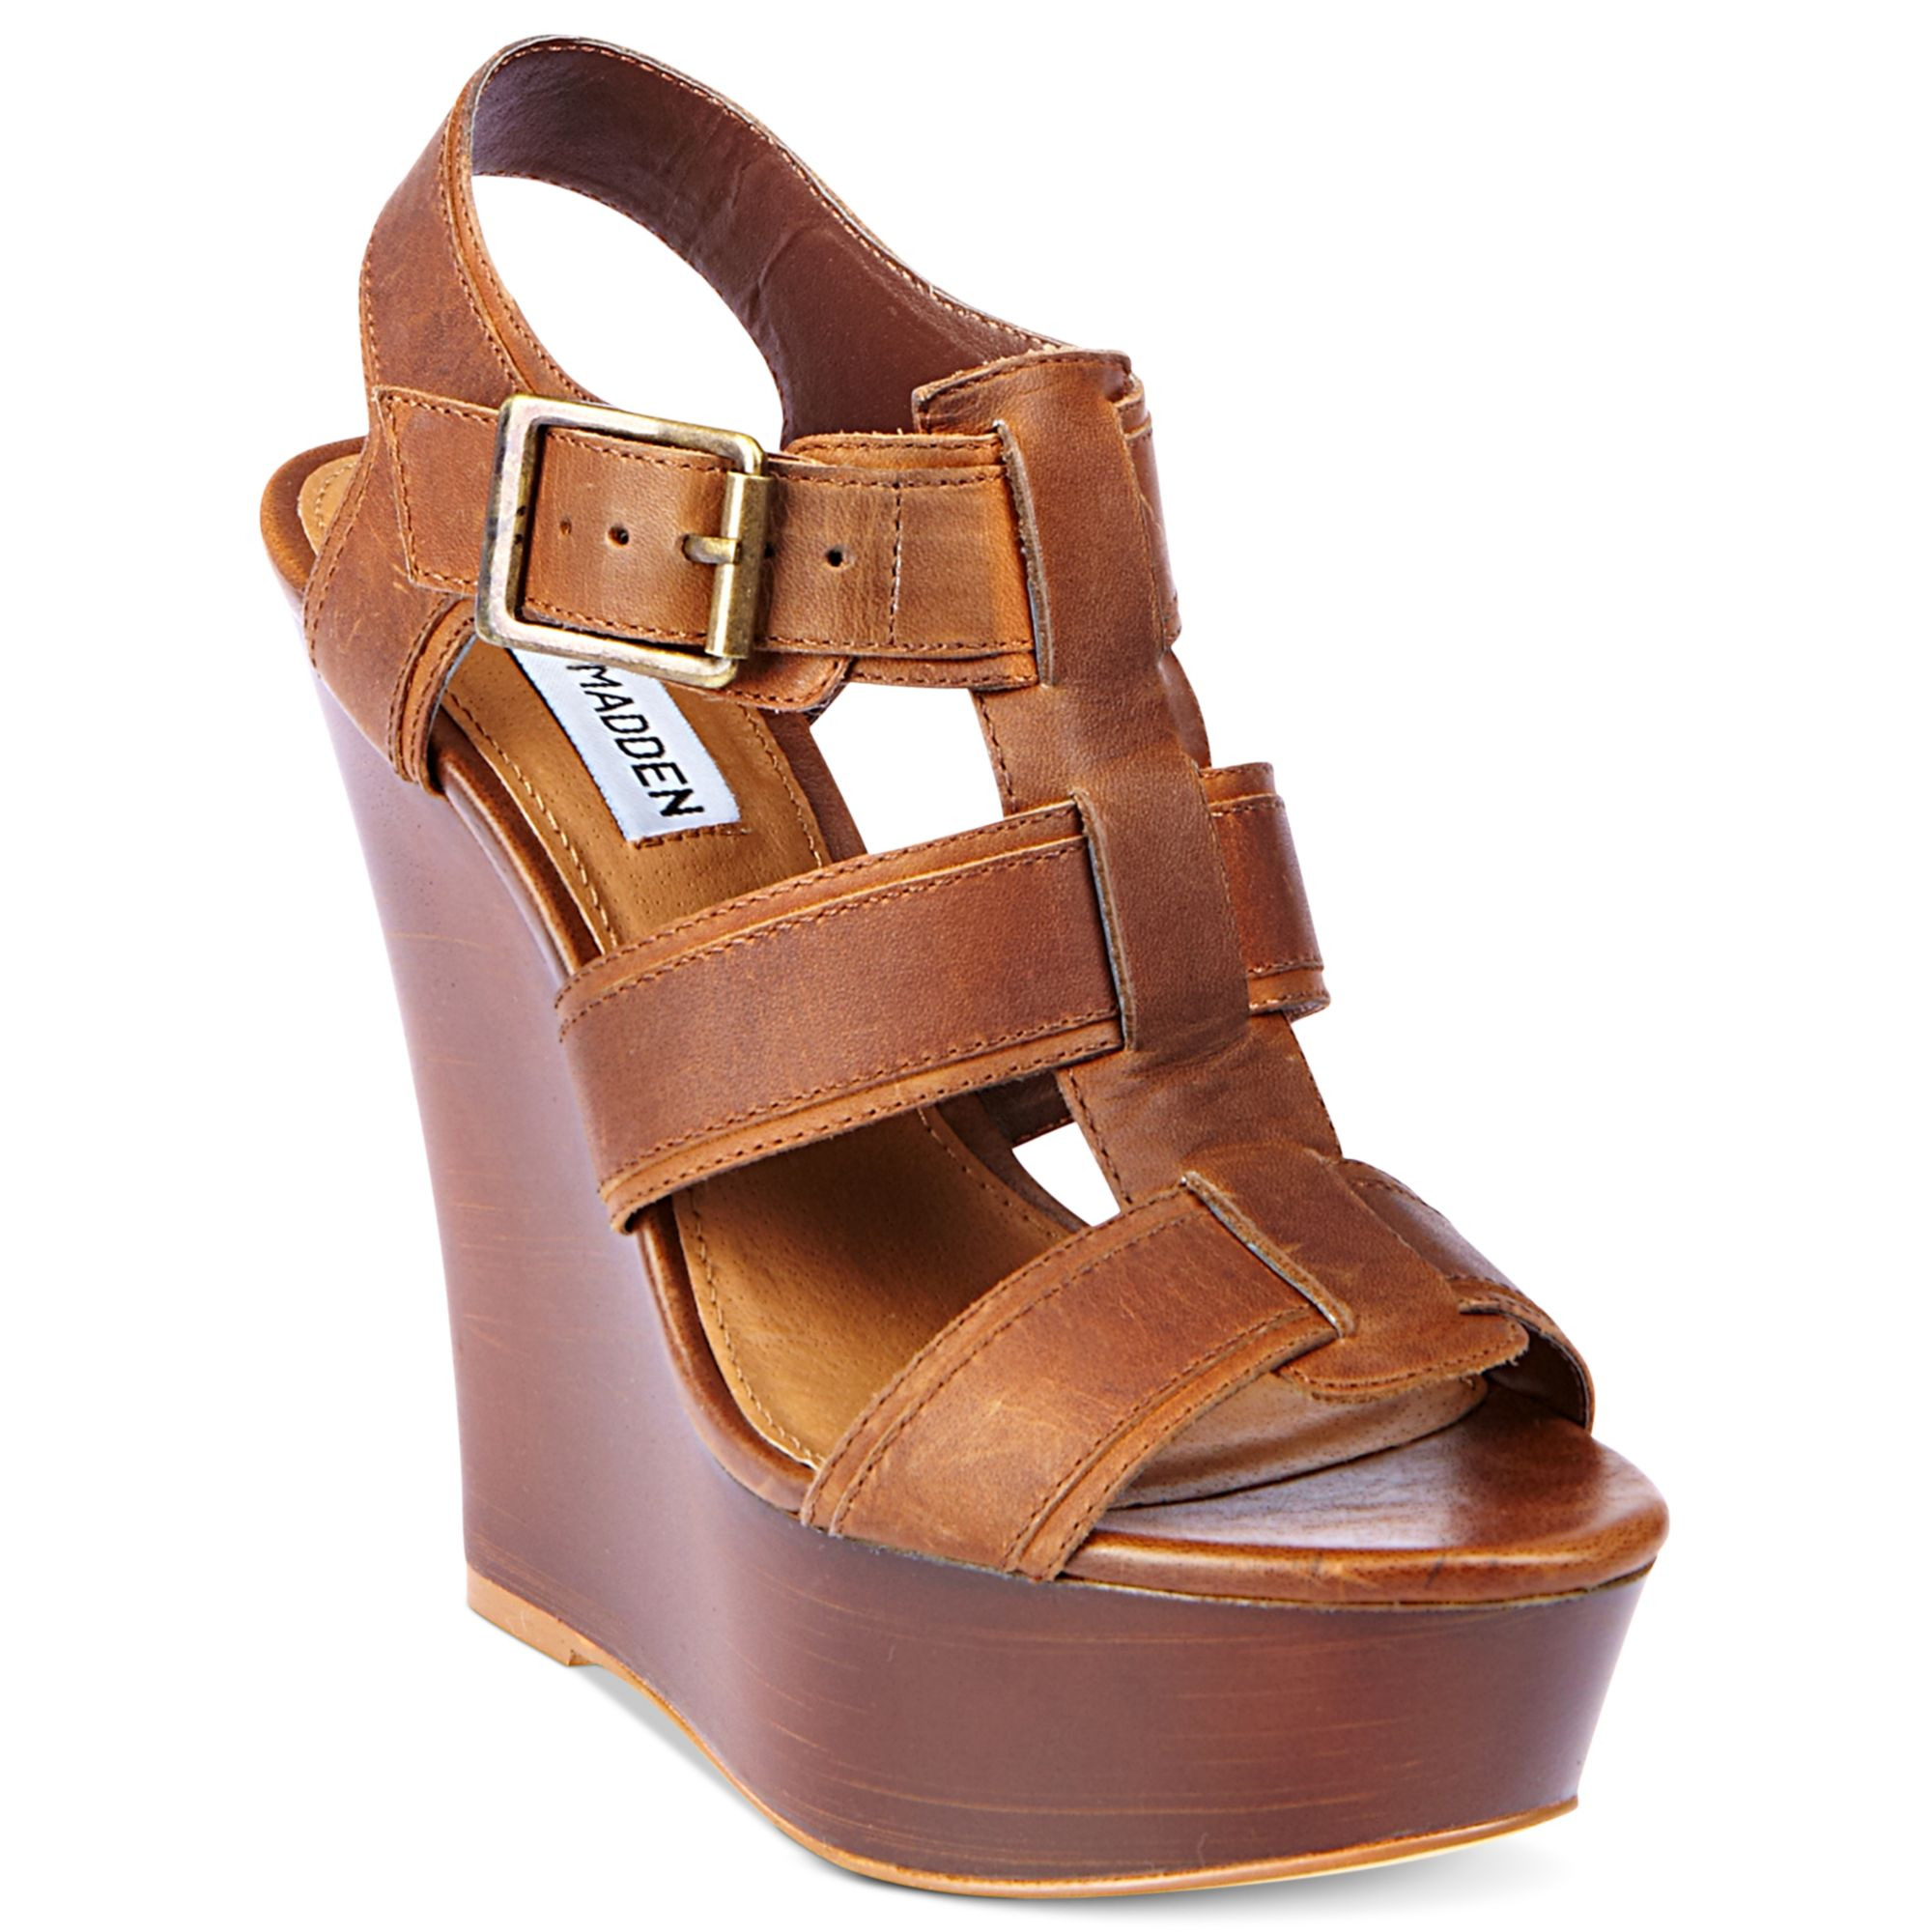 a5510db9787 Lyst - Steve Madden Wanting Platform Wedge Sandals in Brown